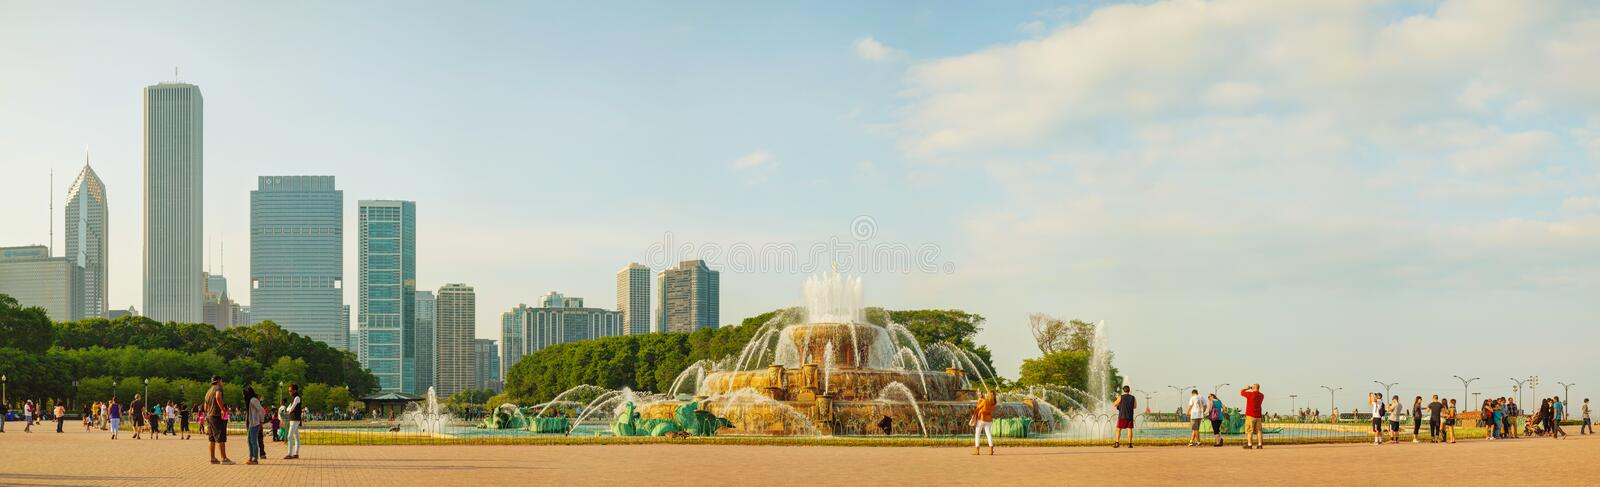 Download Chicago Downtown Cityscape With Buckingham Fountain At Grant Par Editorial Stock Image - Image: 33013384